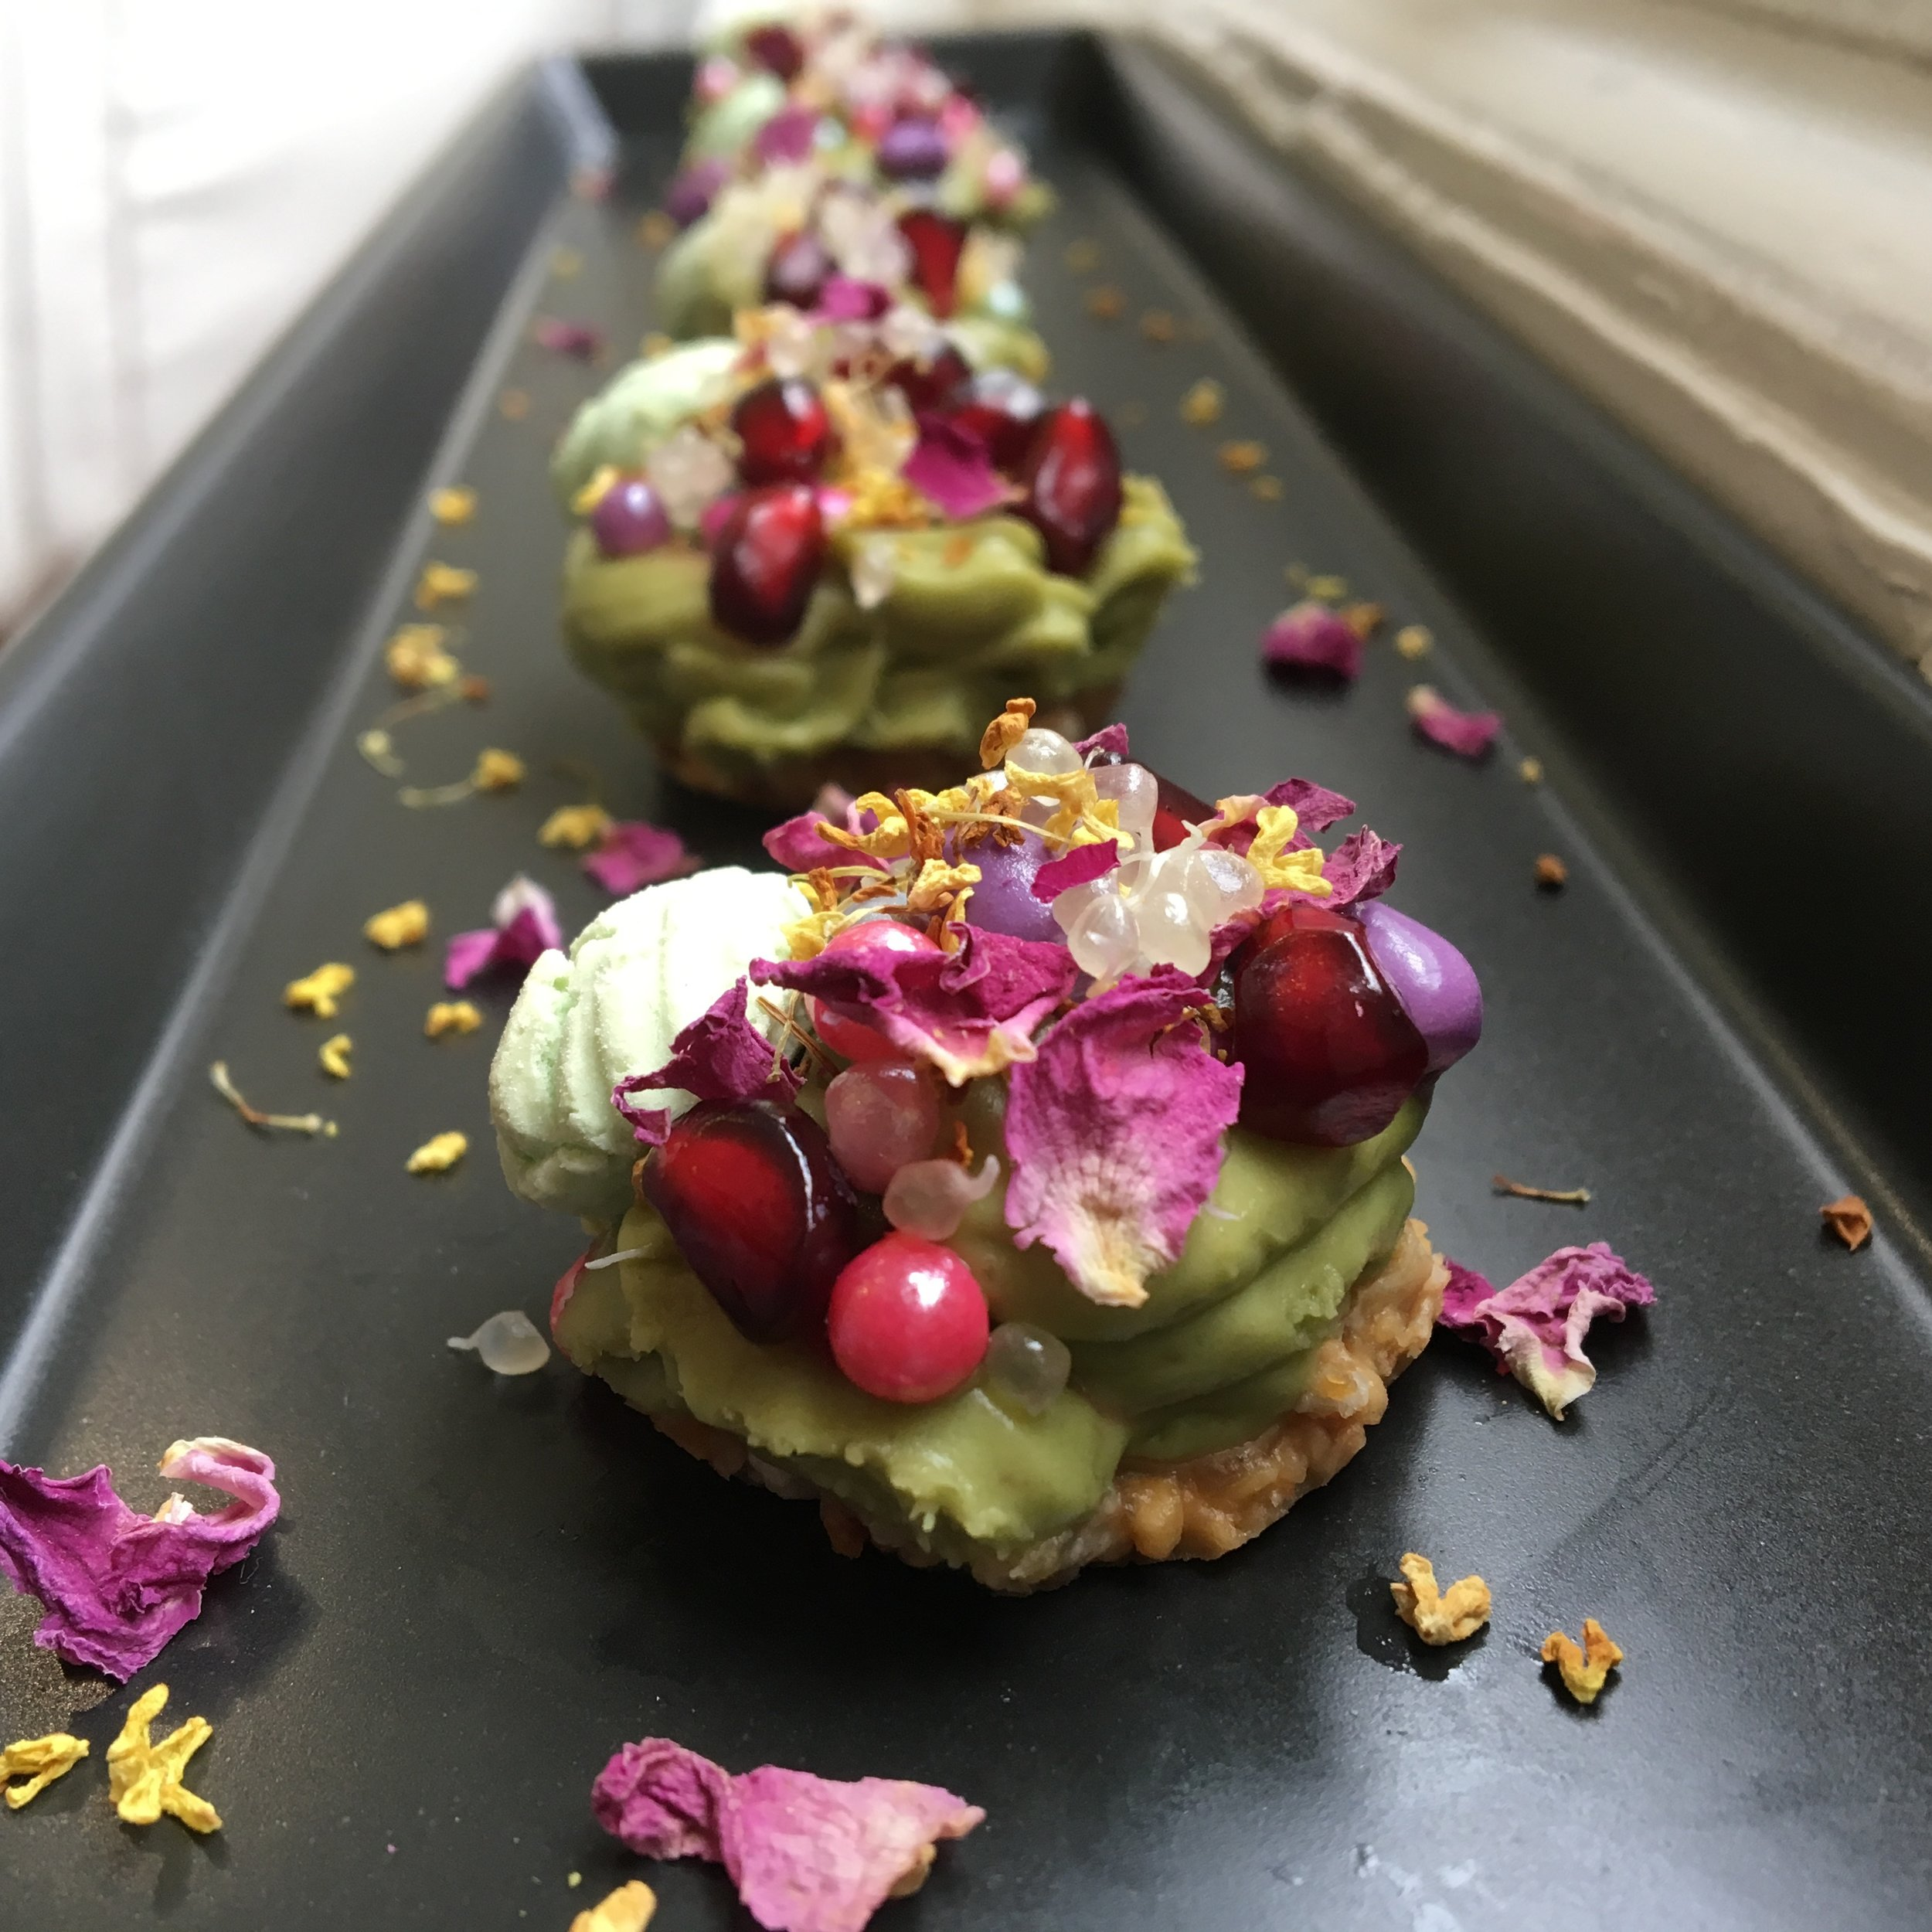 Dessert Canapé      Avo Crown $6.5      Raw avocado cheese, rainbow pearls, finger lime, tic tac, pomegranate, dried rose petal and osmanthus flowers on citrus nutty cookies.